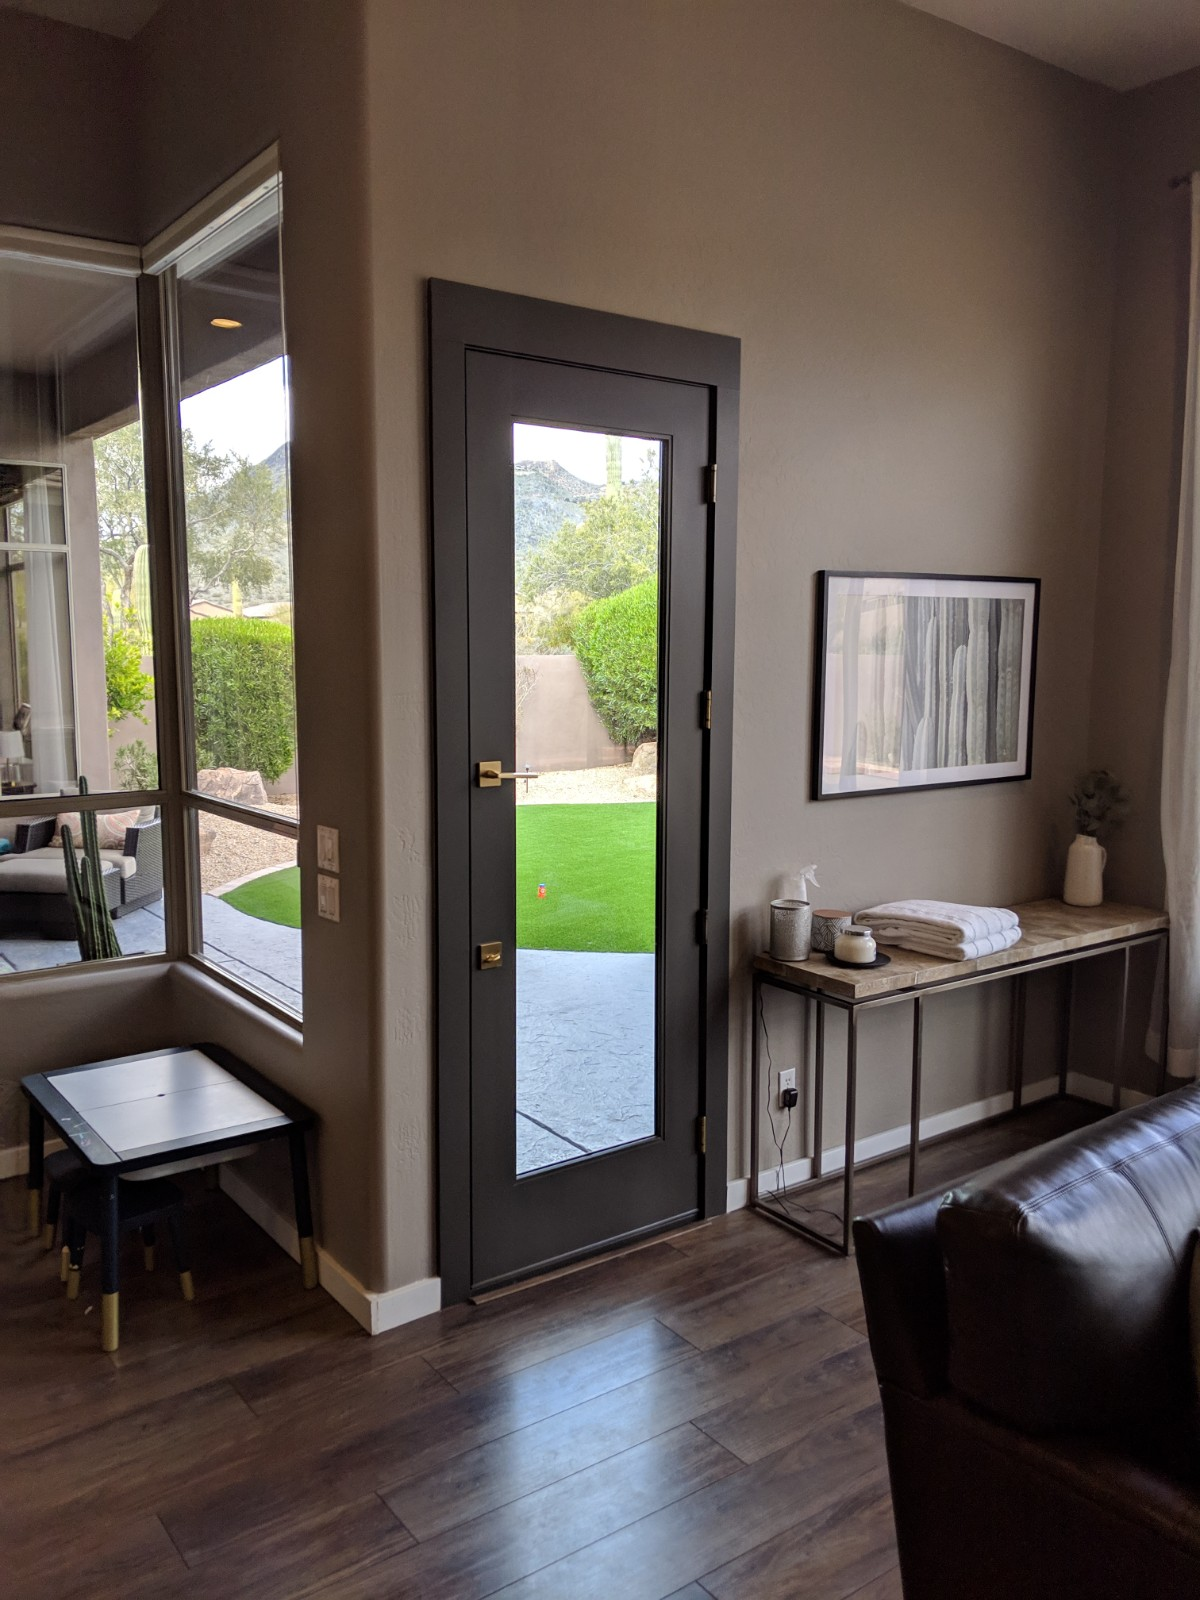 Arizona Window and Door in Scottsdale and Tucson showing small door to backyard with window